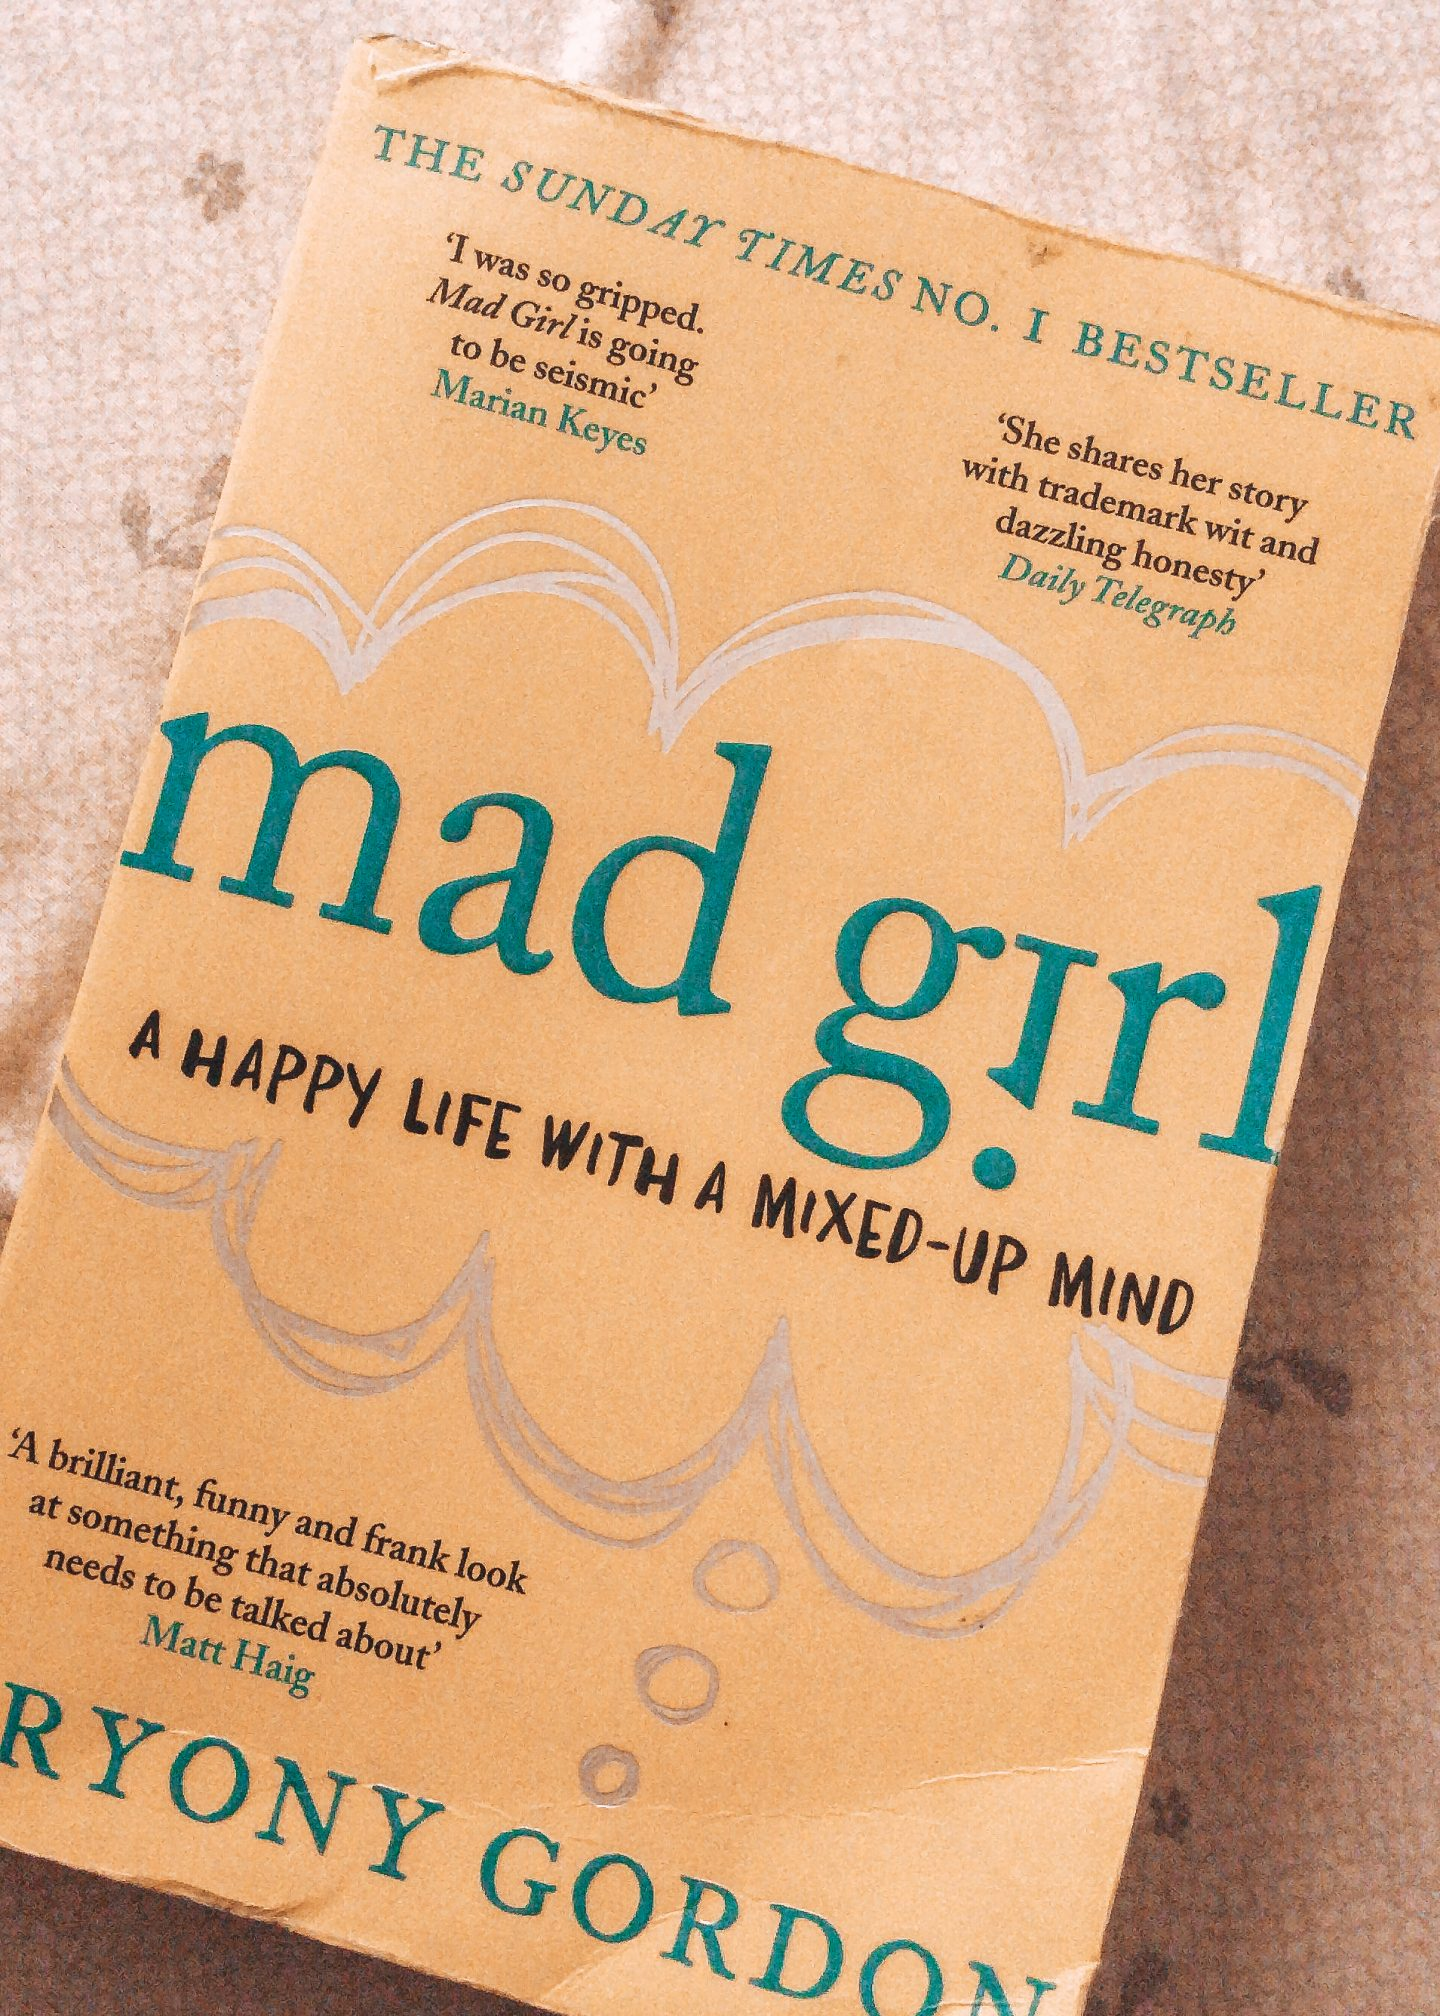 Mad Girl by Bryony Gordon - Bryony Gordon's memoir of her happy yet confused life, growing up and throughout her early twenties and thirties is written in a fun and humorous way.